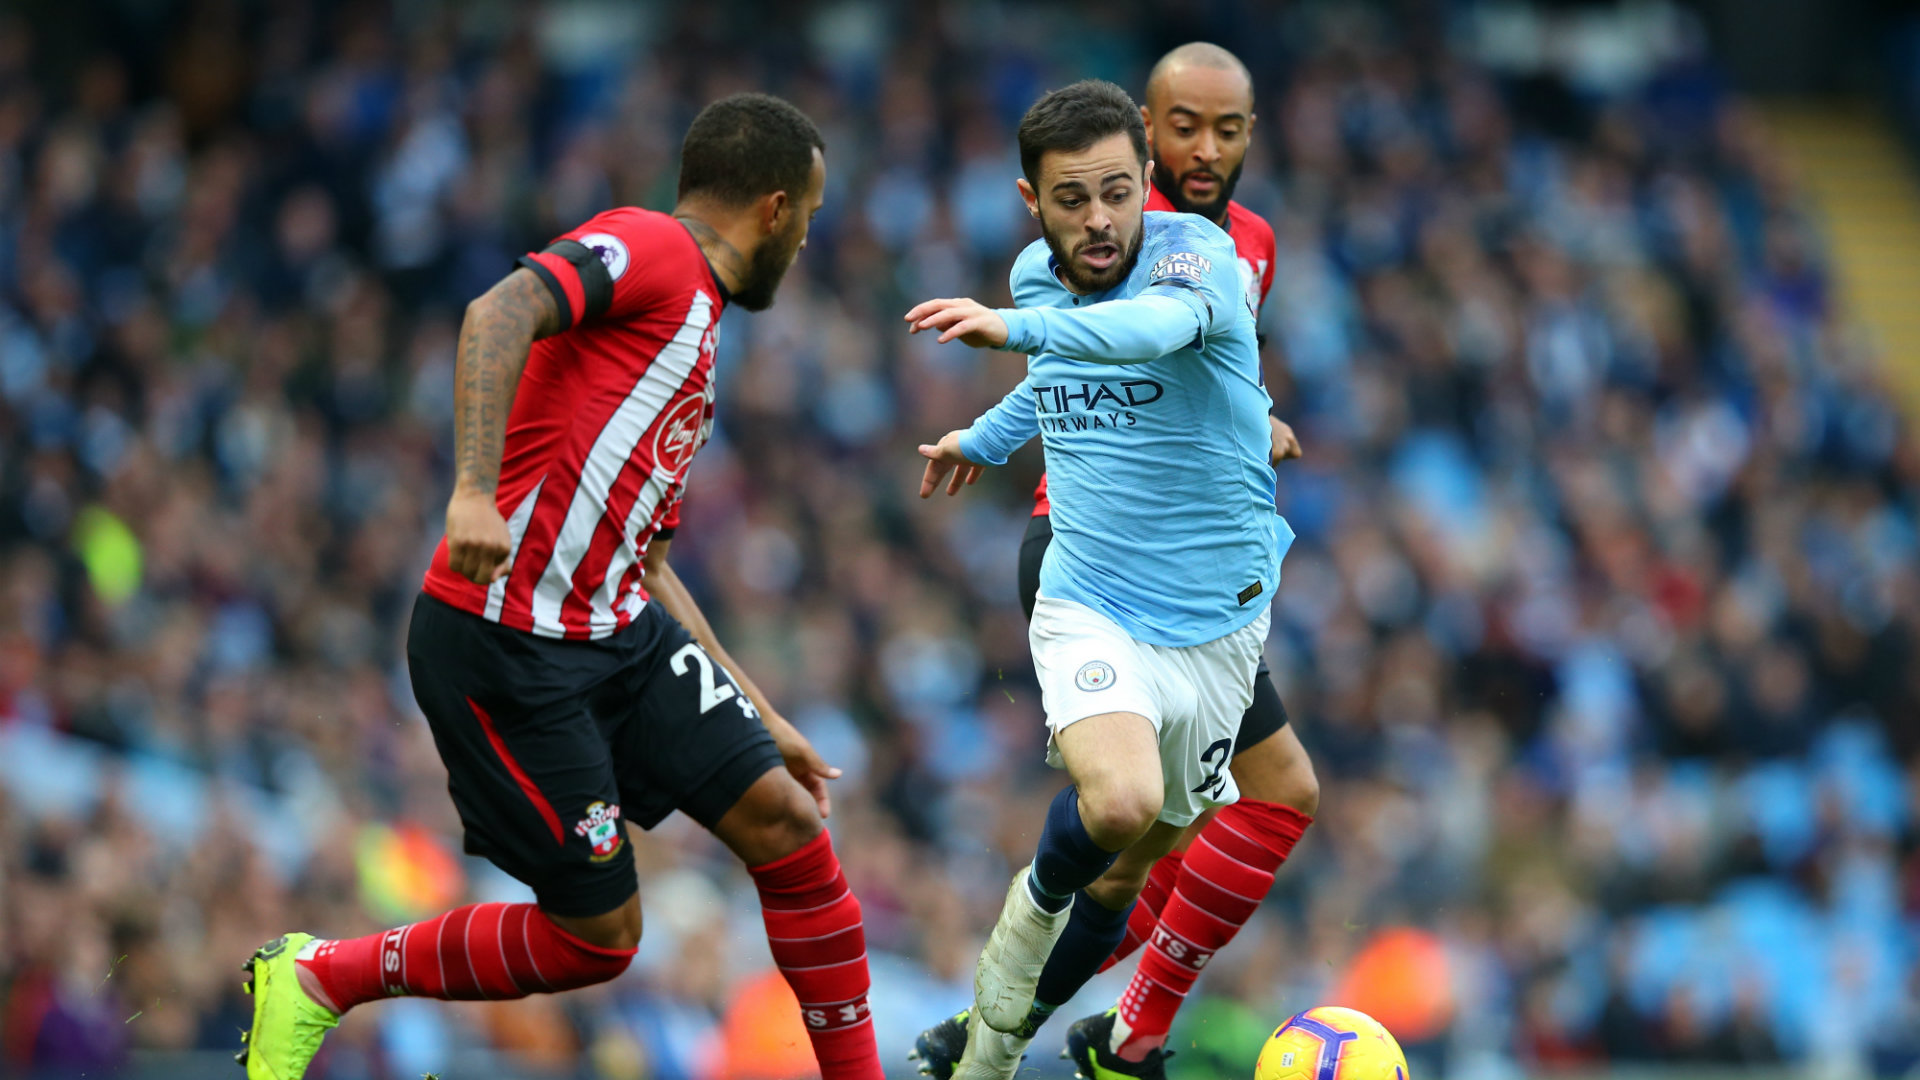 Bernardo Silva Ryan Bertrand Man City vs Southampton Premier League 2018-19